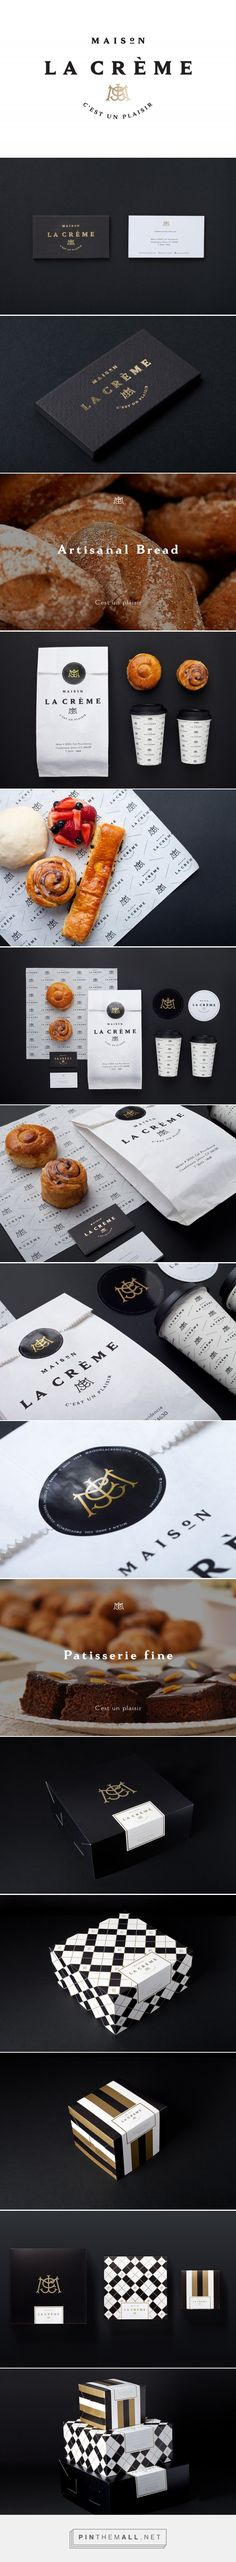 Maison La Crème Bakery Branding and Packaging by Analogo | Fivestar Branding Agency – Design and Branding Agency & Curated Inspiration Gallery